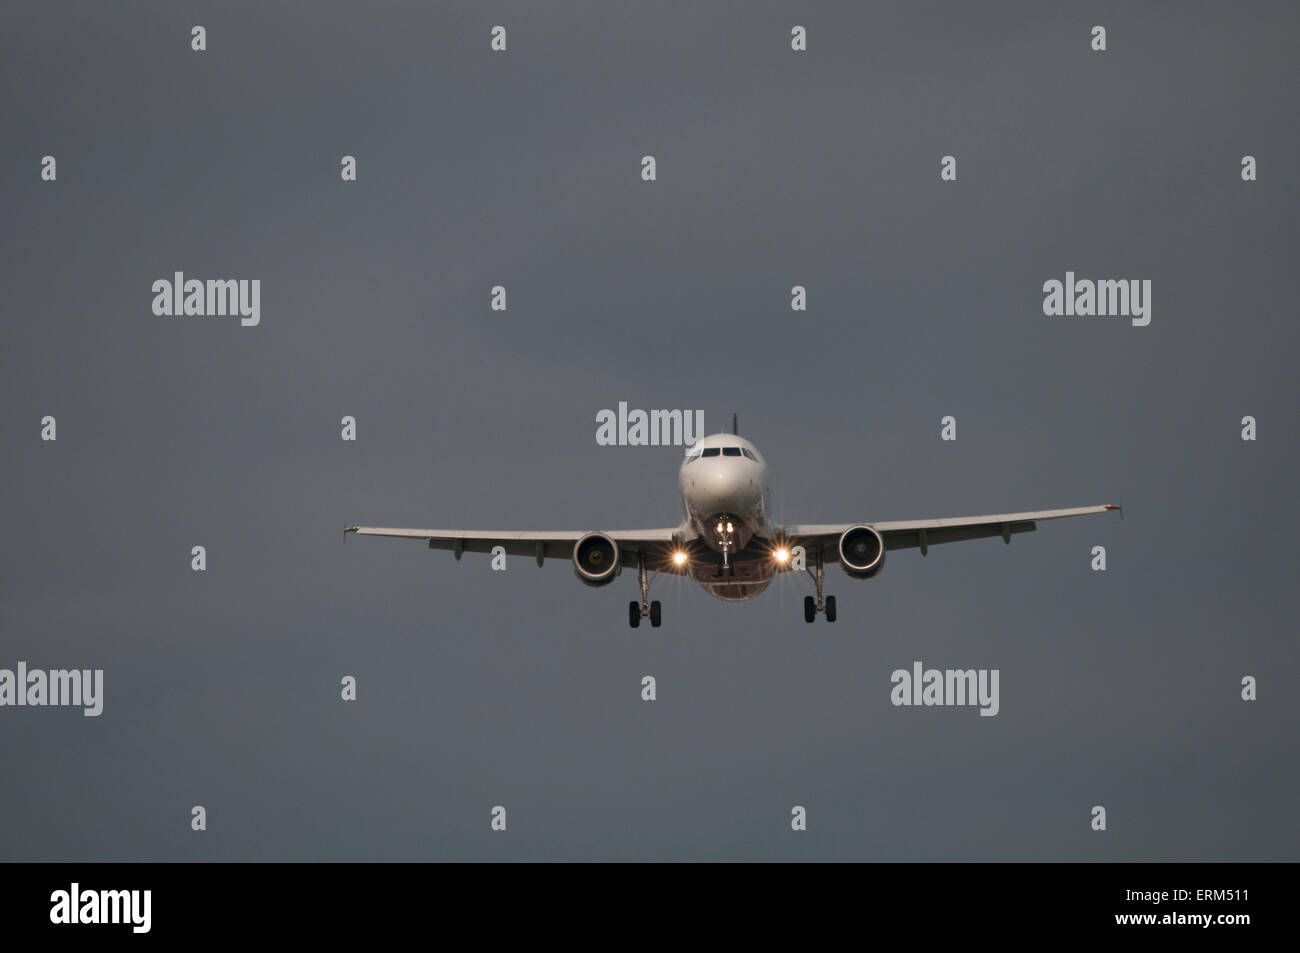 Commercial airliner on final approach - head-on view. - Stock Image